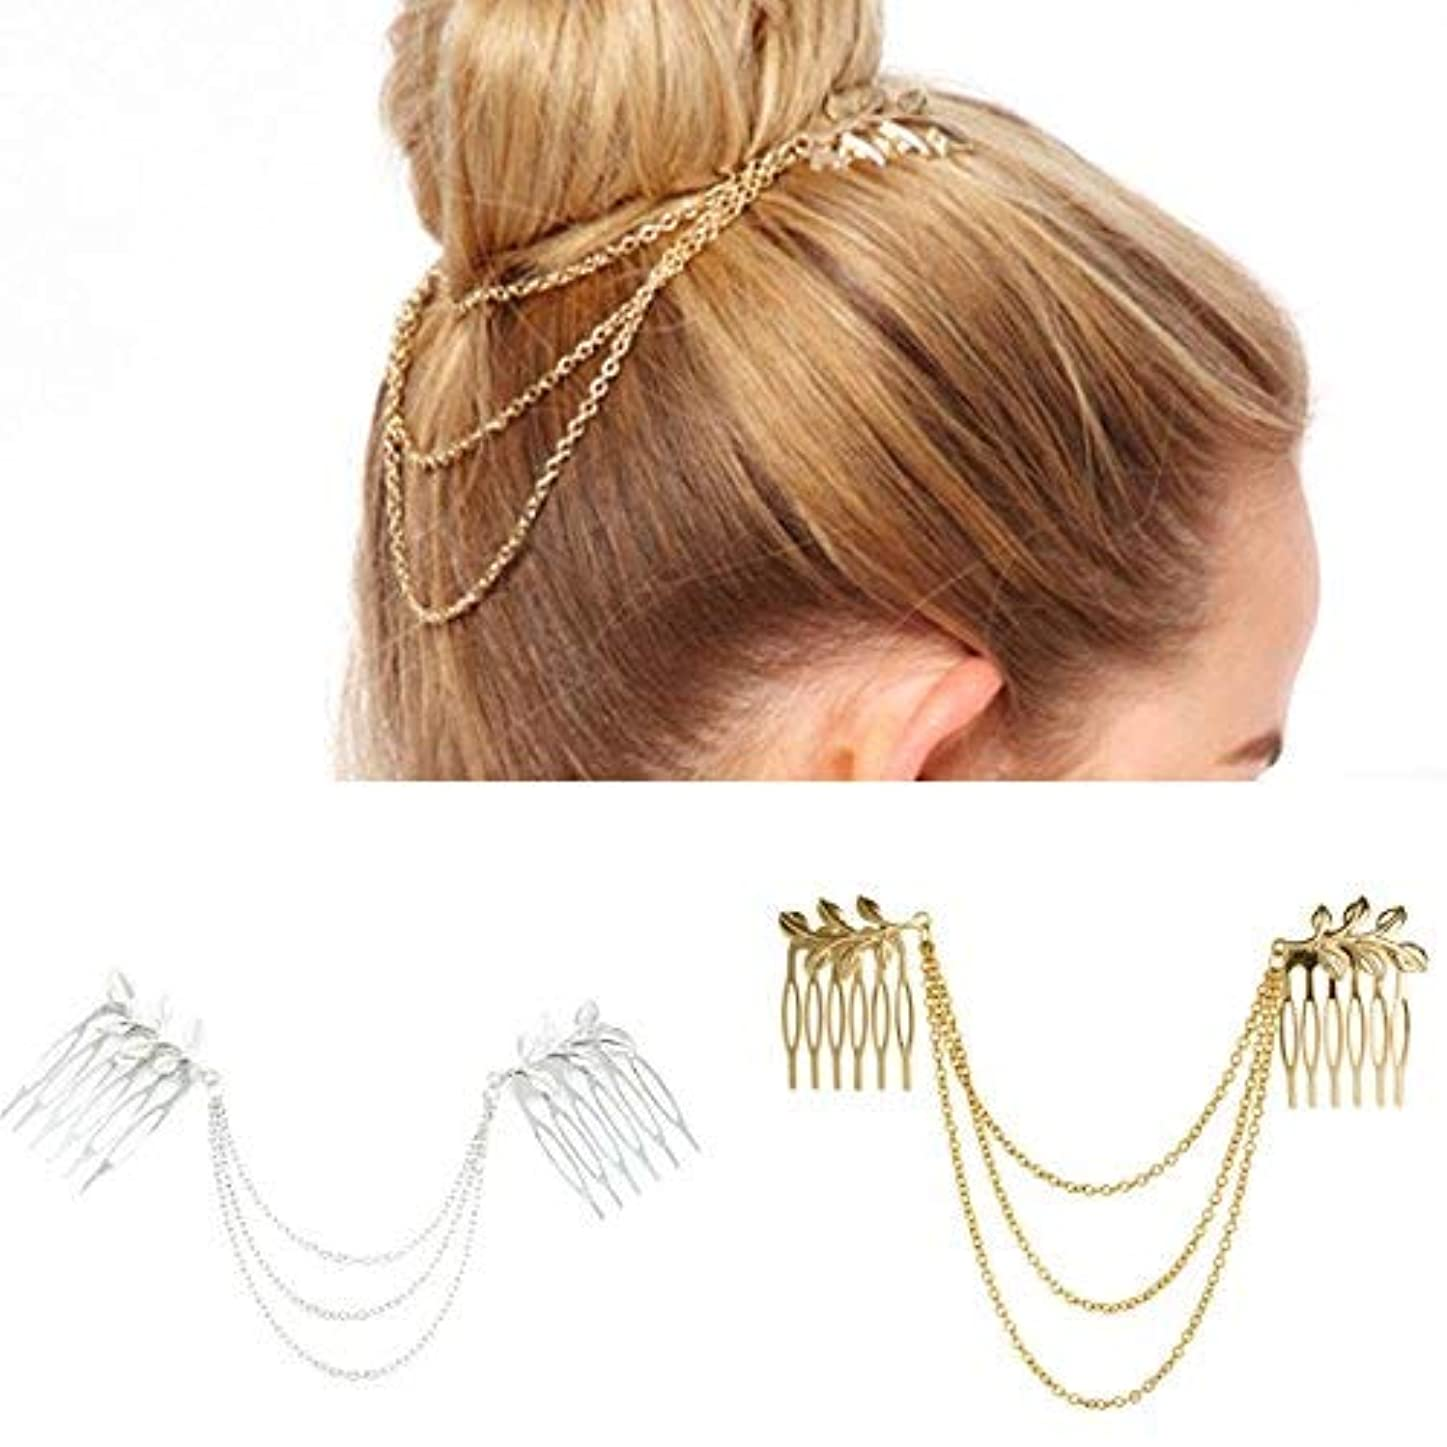 茎舌な欠点Numblartd 2 Pcs Women BOHO Chic Metal Leaf Chain Tassel Headband Hair Comb - Fashion Fringe Hair Clip Pins Hairpin...